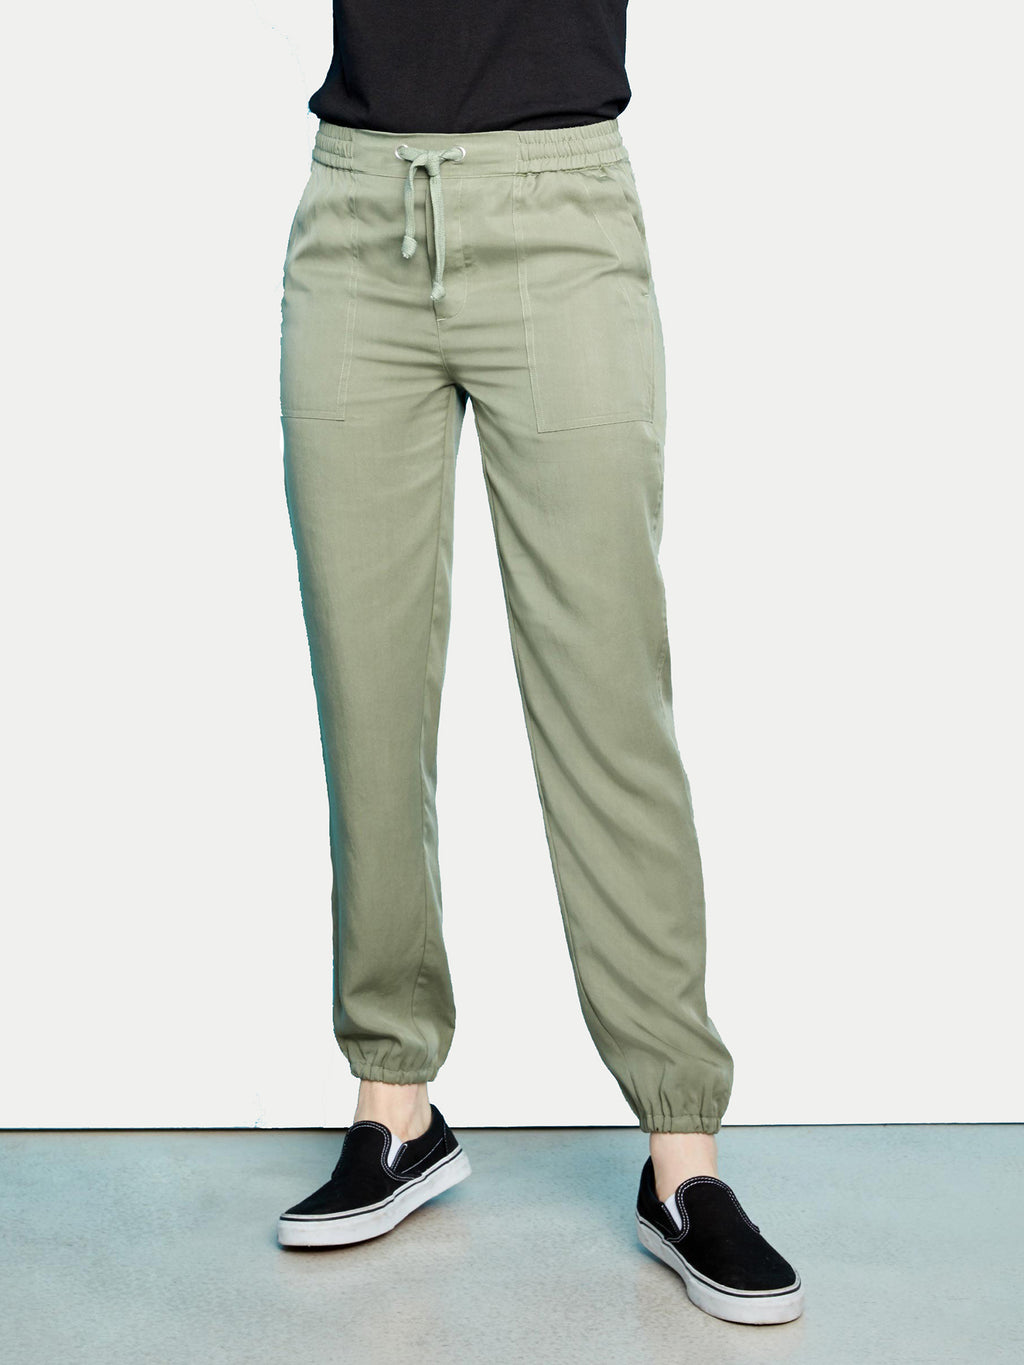 REIKO - Ryan Street Pants online at PAYA boutique